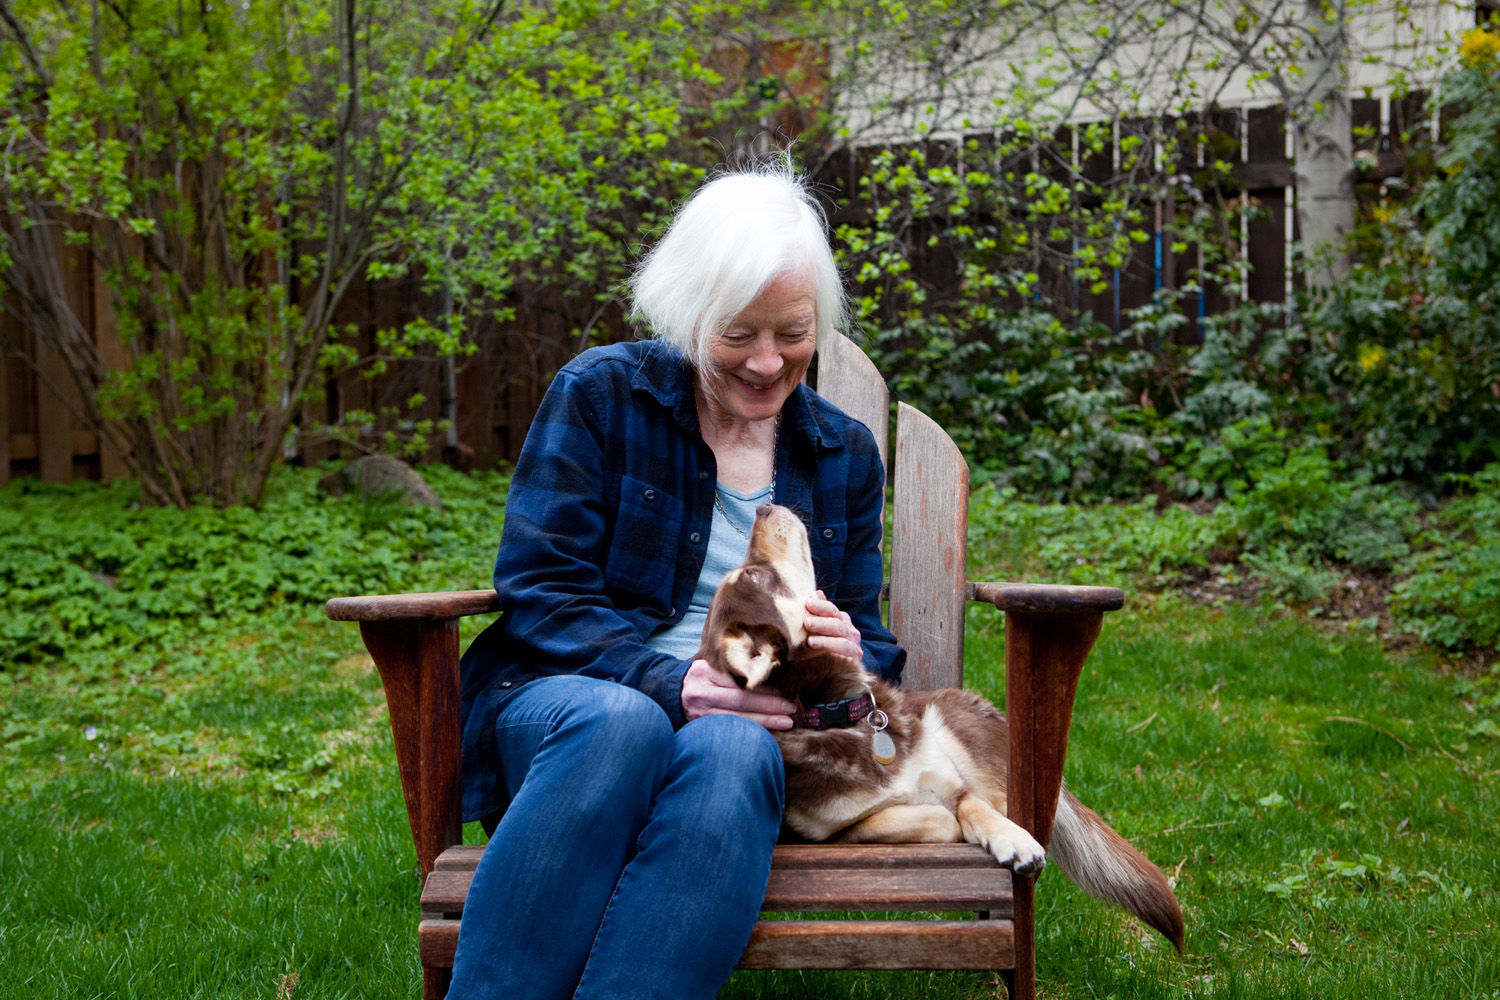 Betsy Warriner, 77, with her dog, Daisy, at their home